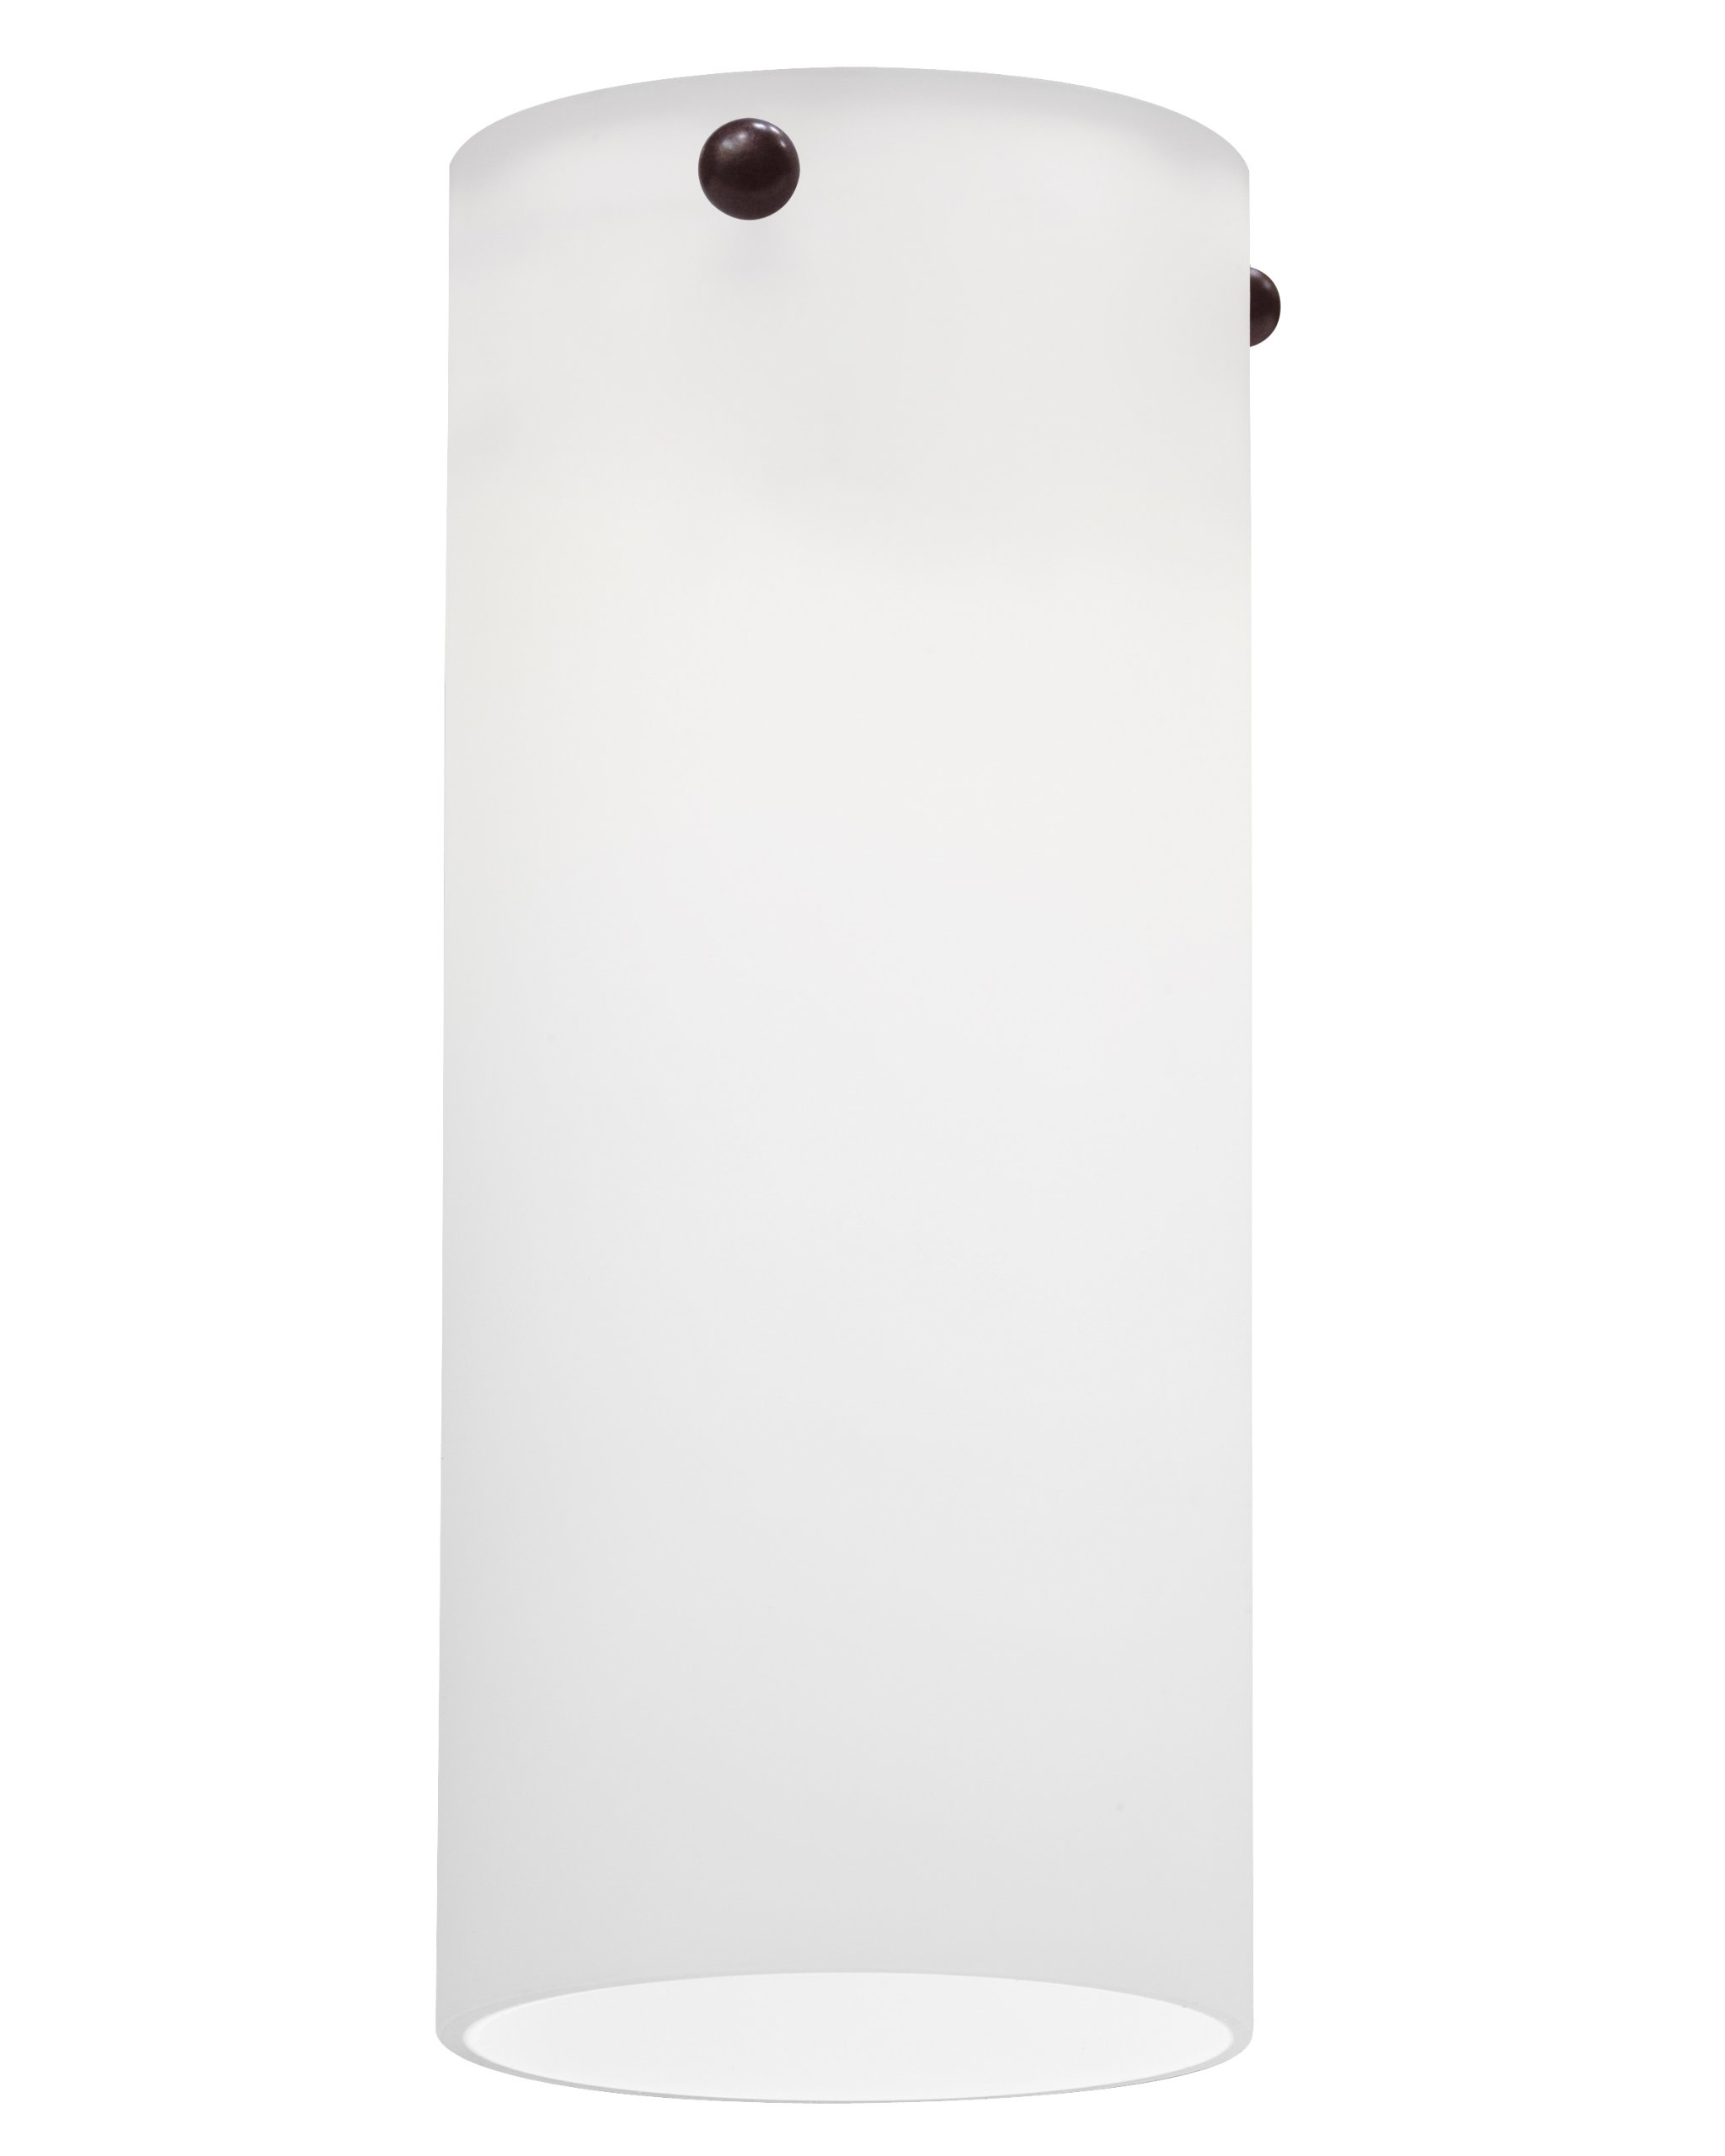 Lithonia Lighting DTCL 1001 M6 Decorative Pendant Shade Designed to Fit Tall Cylinder, Pendant, and Sconce Fitters only, Opal White